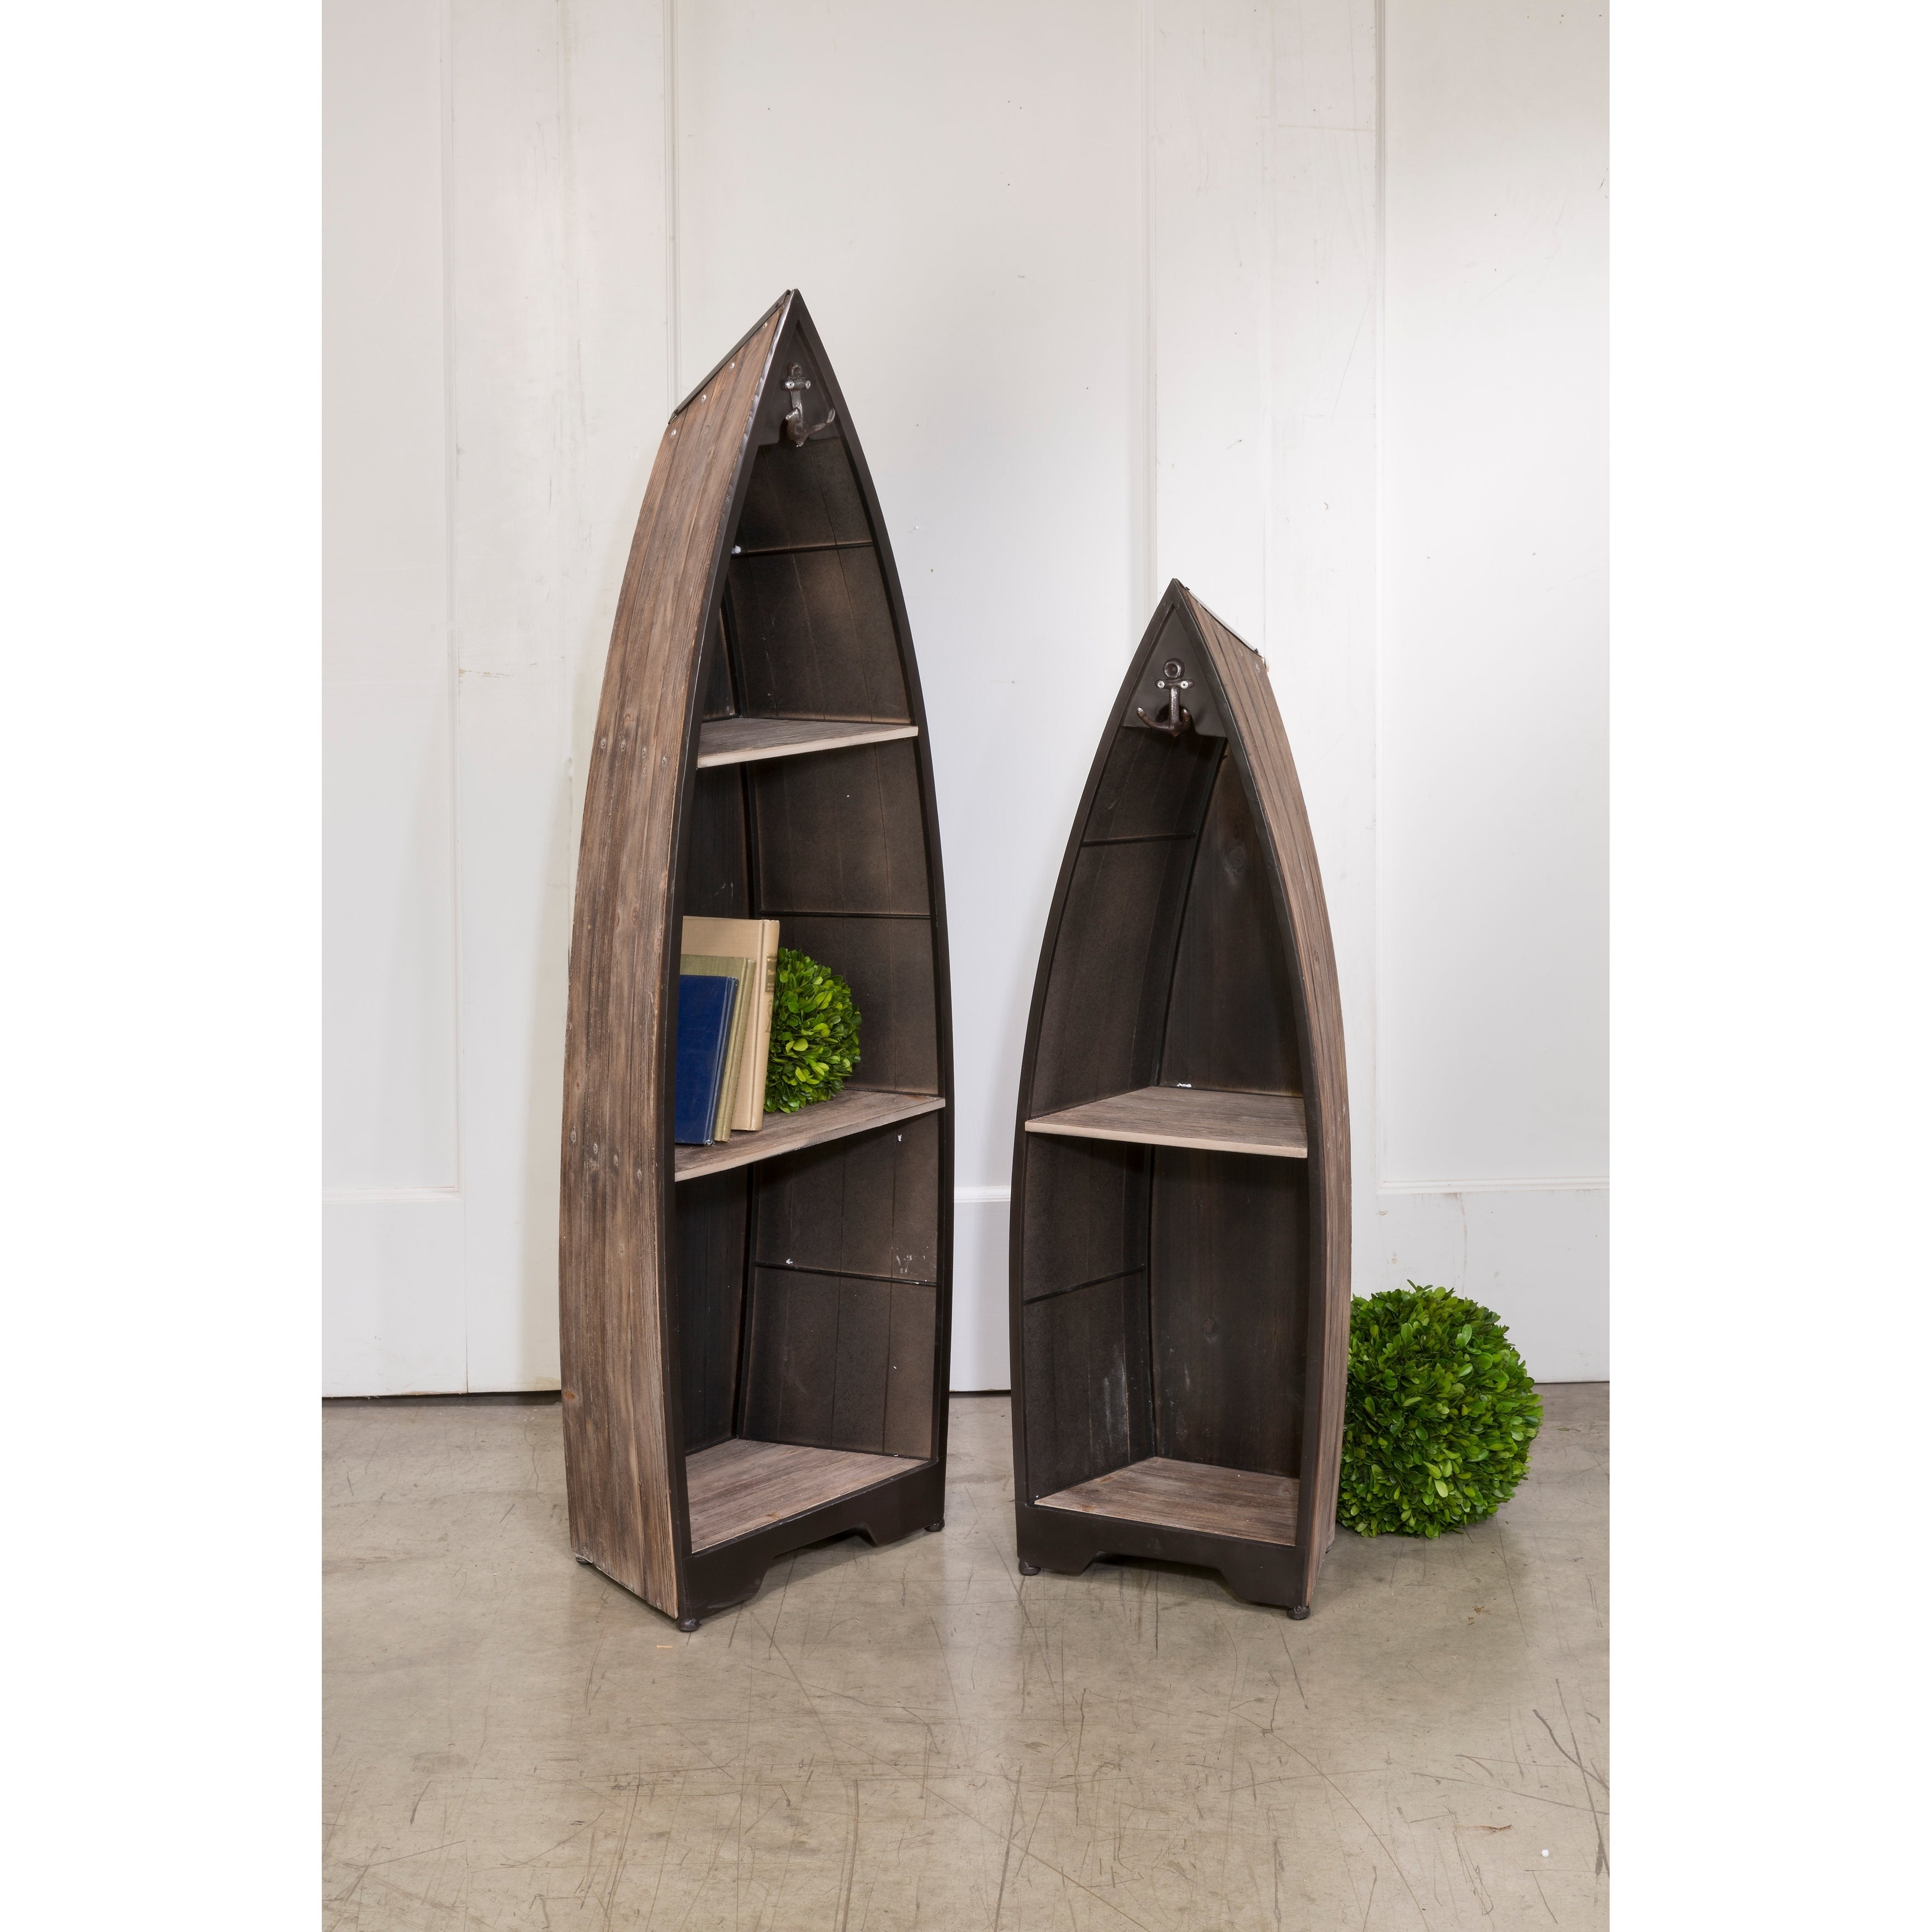 Decorative Wooden Boat With Shelves Set Of 2